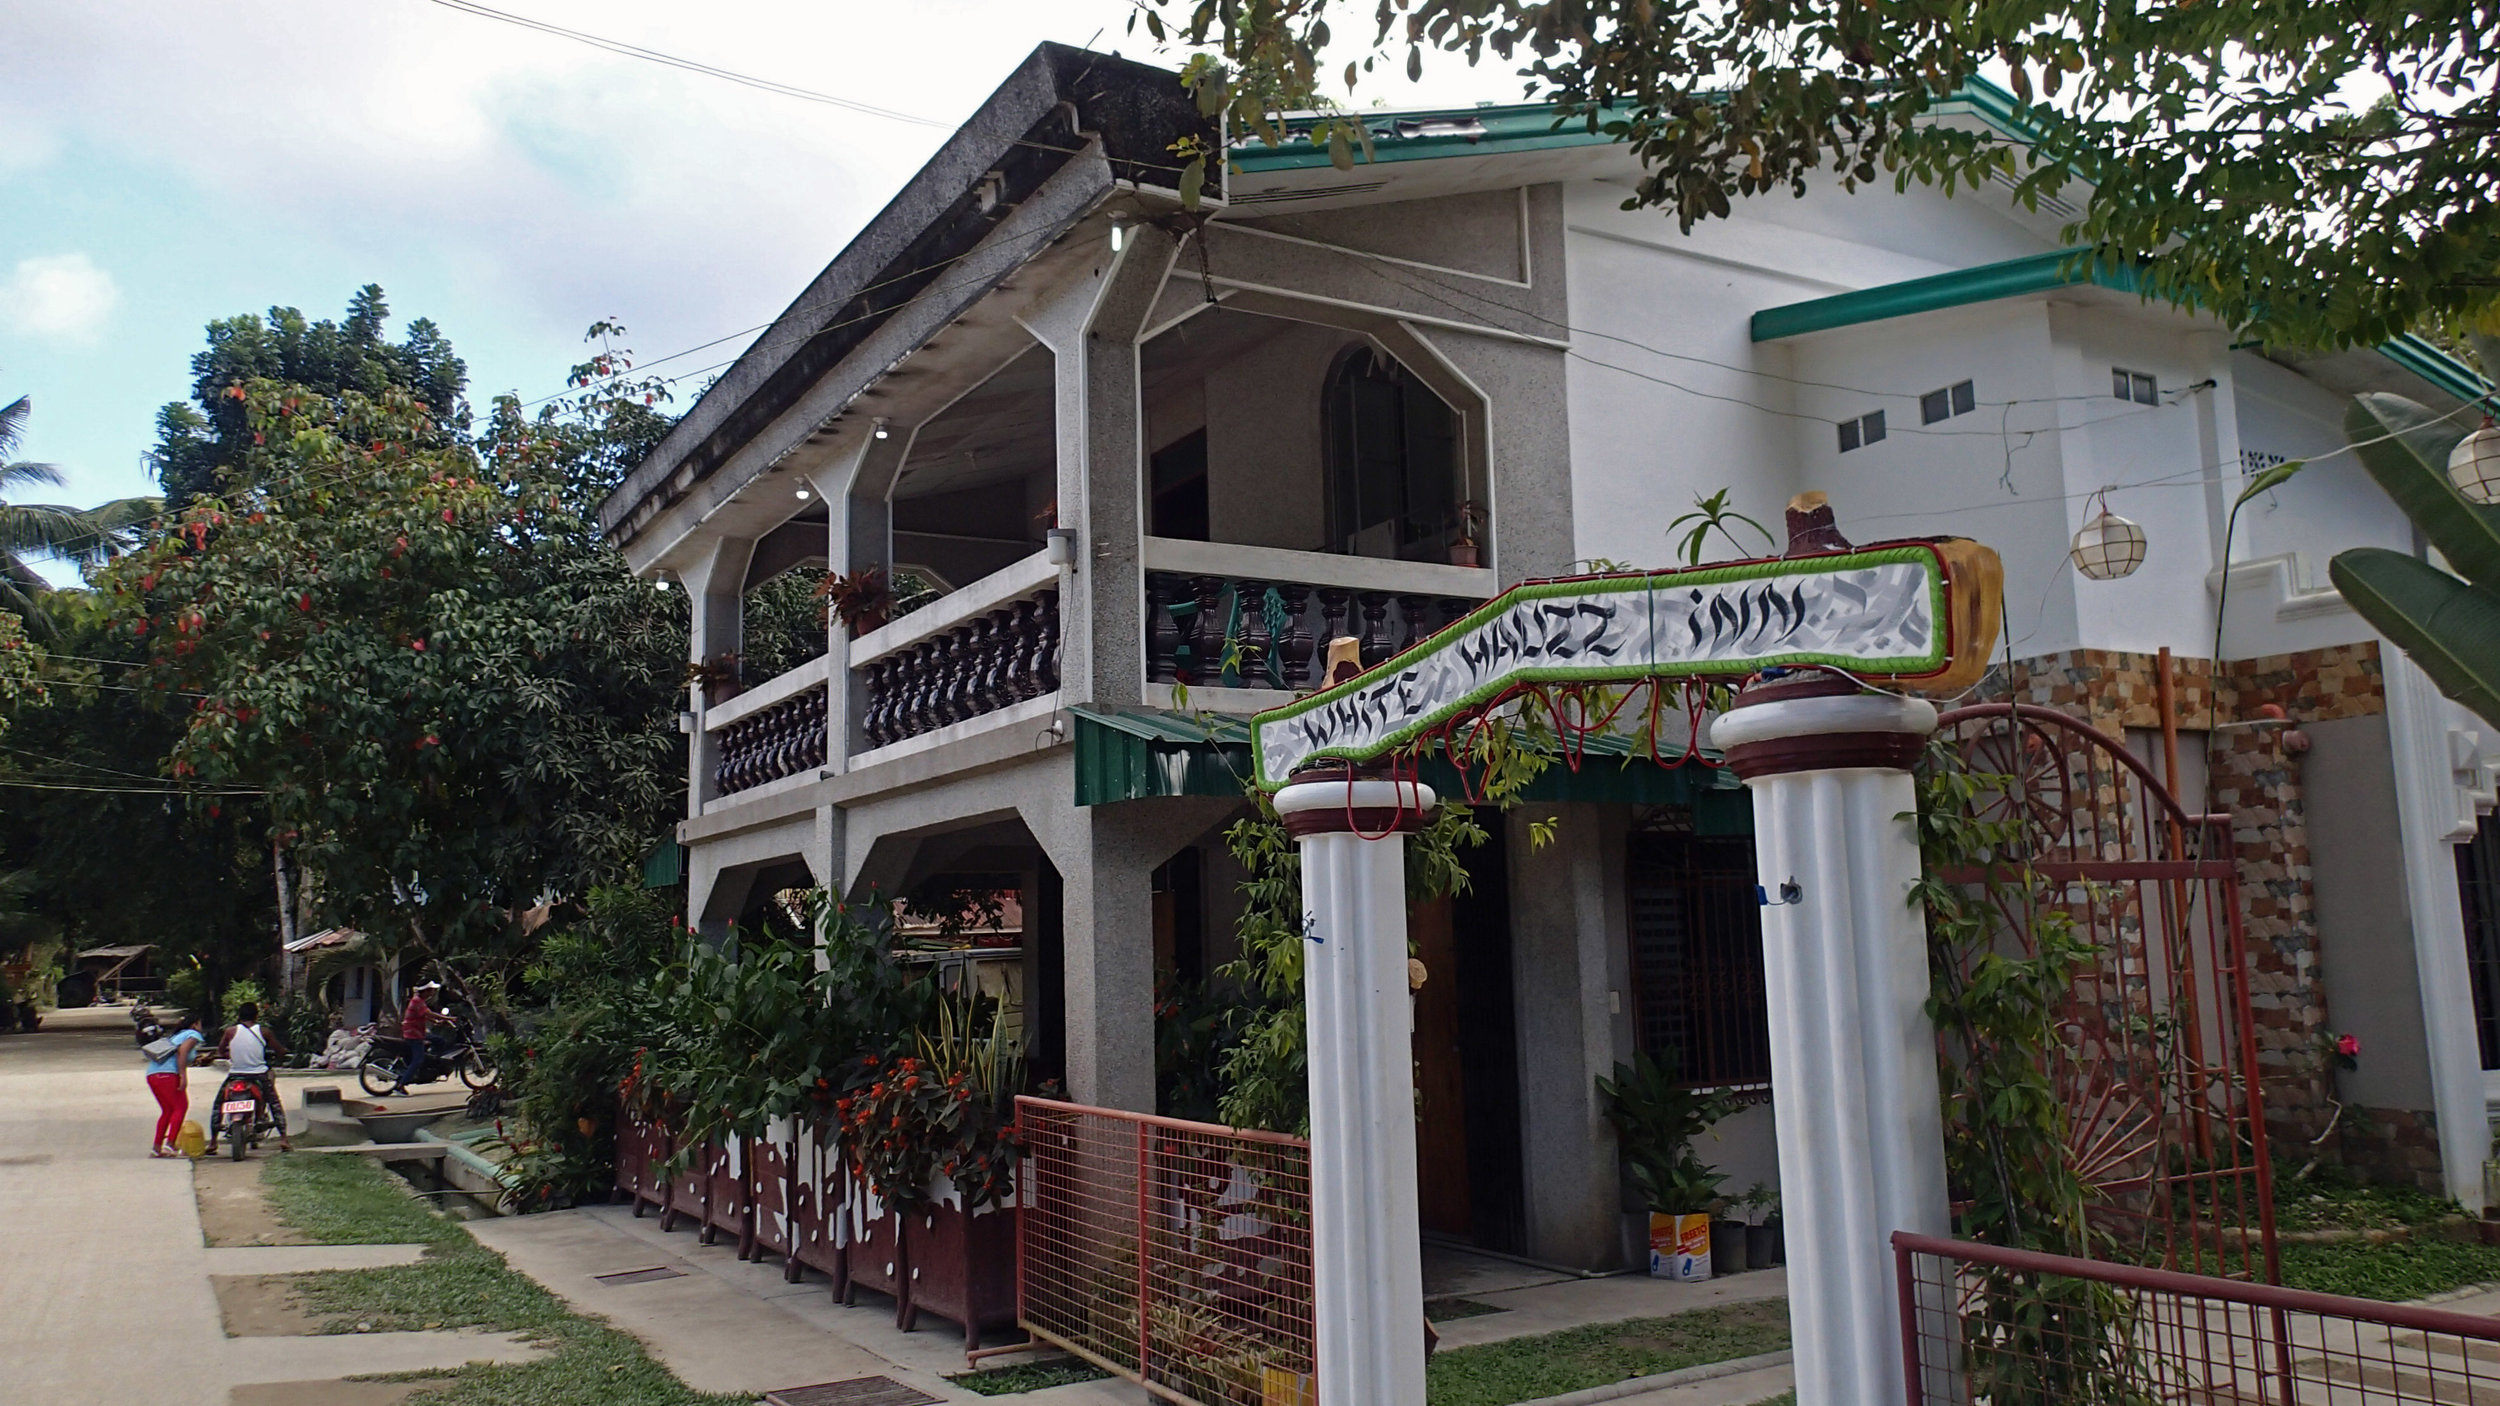 White Hauz Inn.jpg